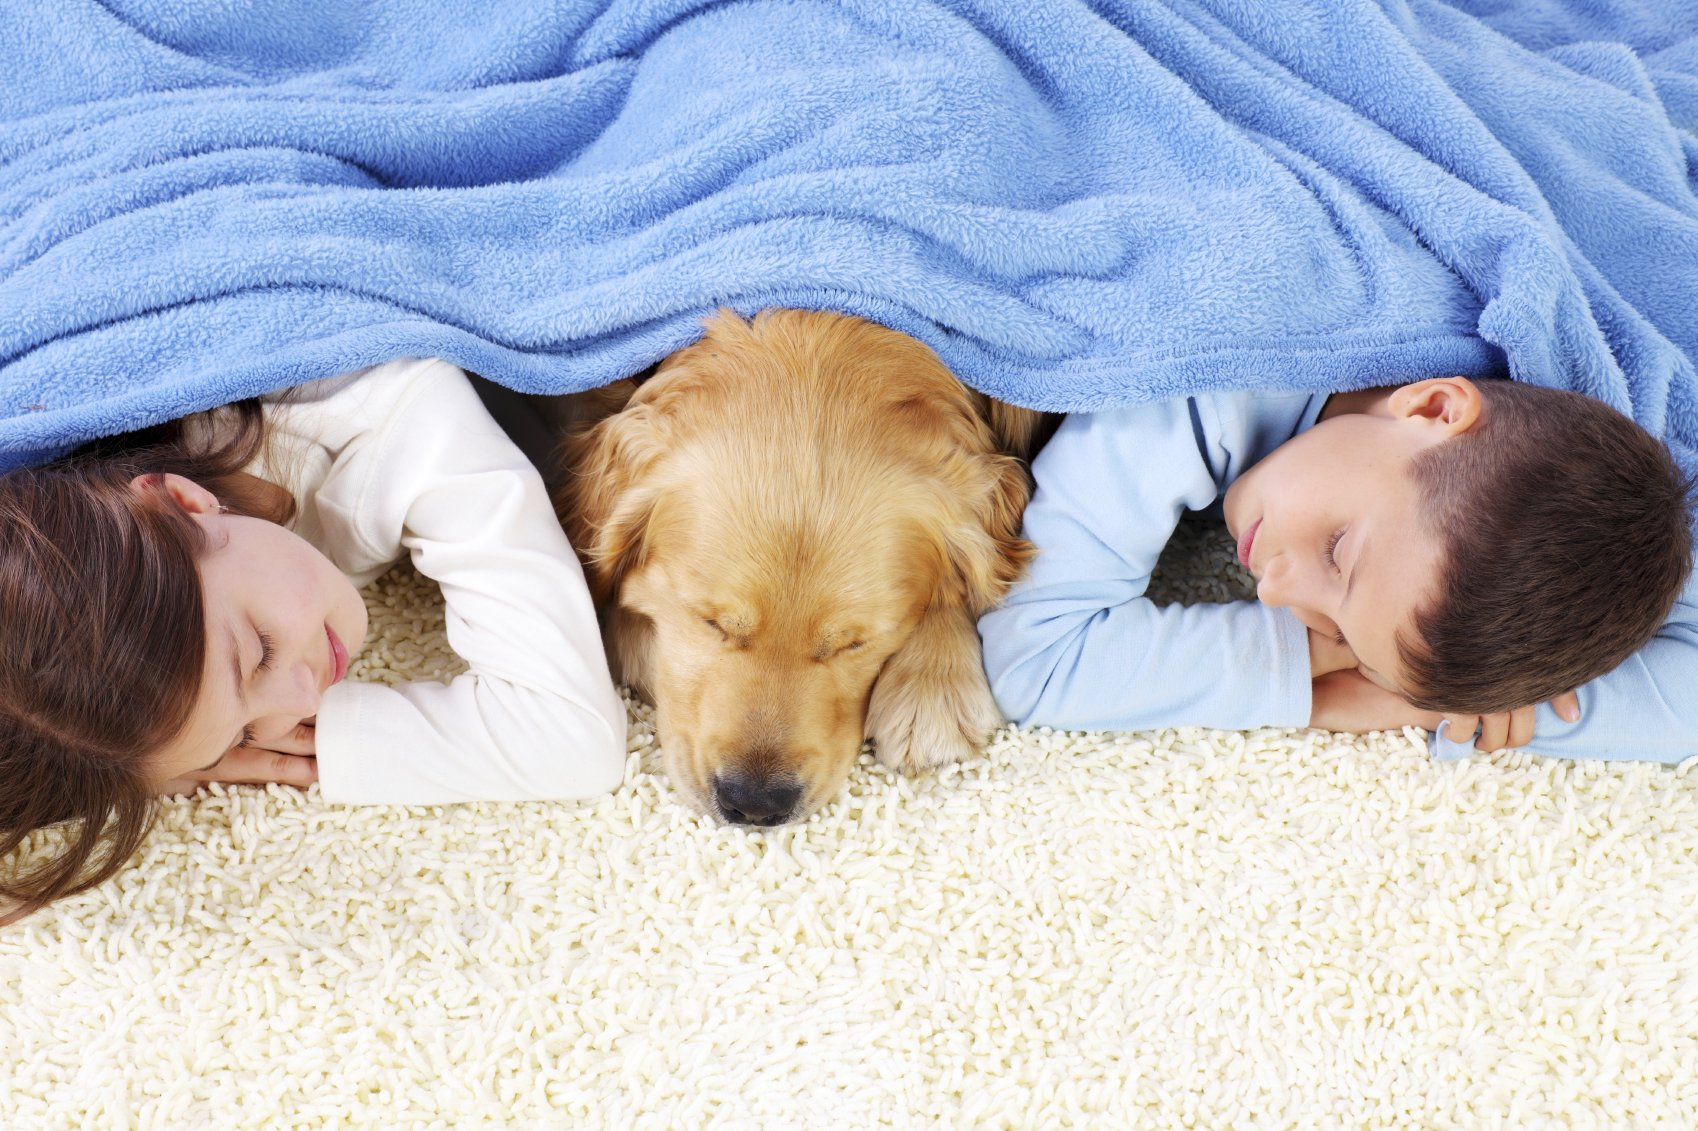 carpet cleaned by chem-dry's pet stain and odor removal in annapolis